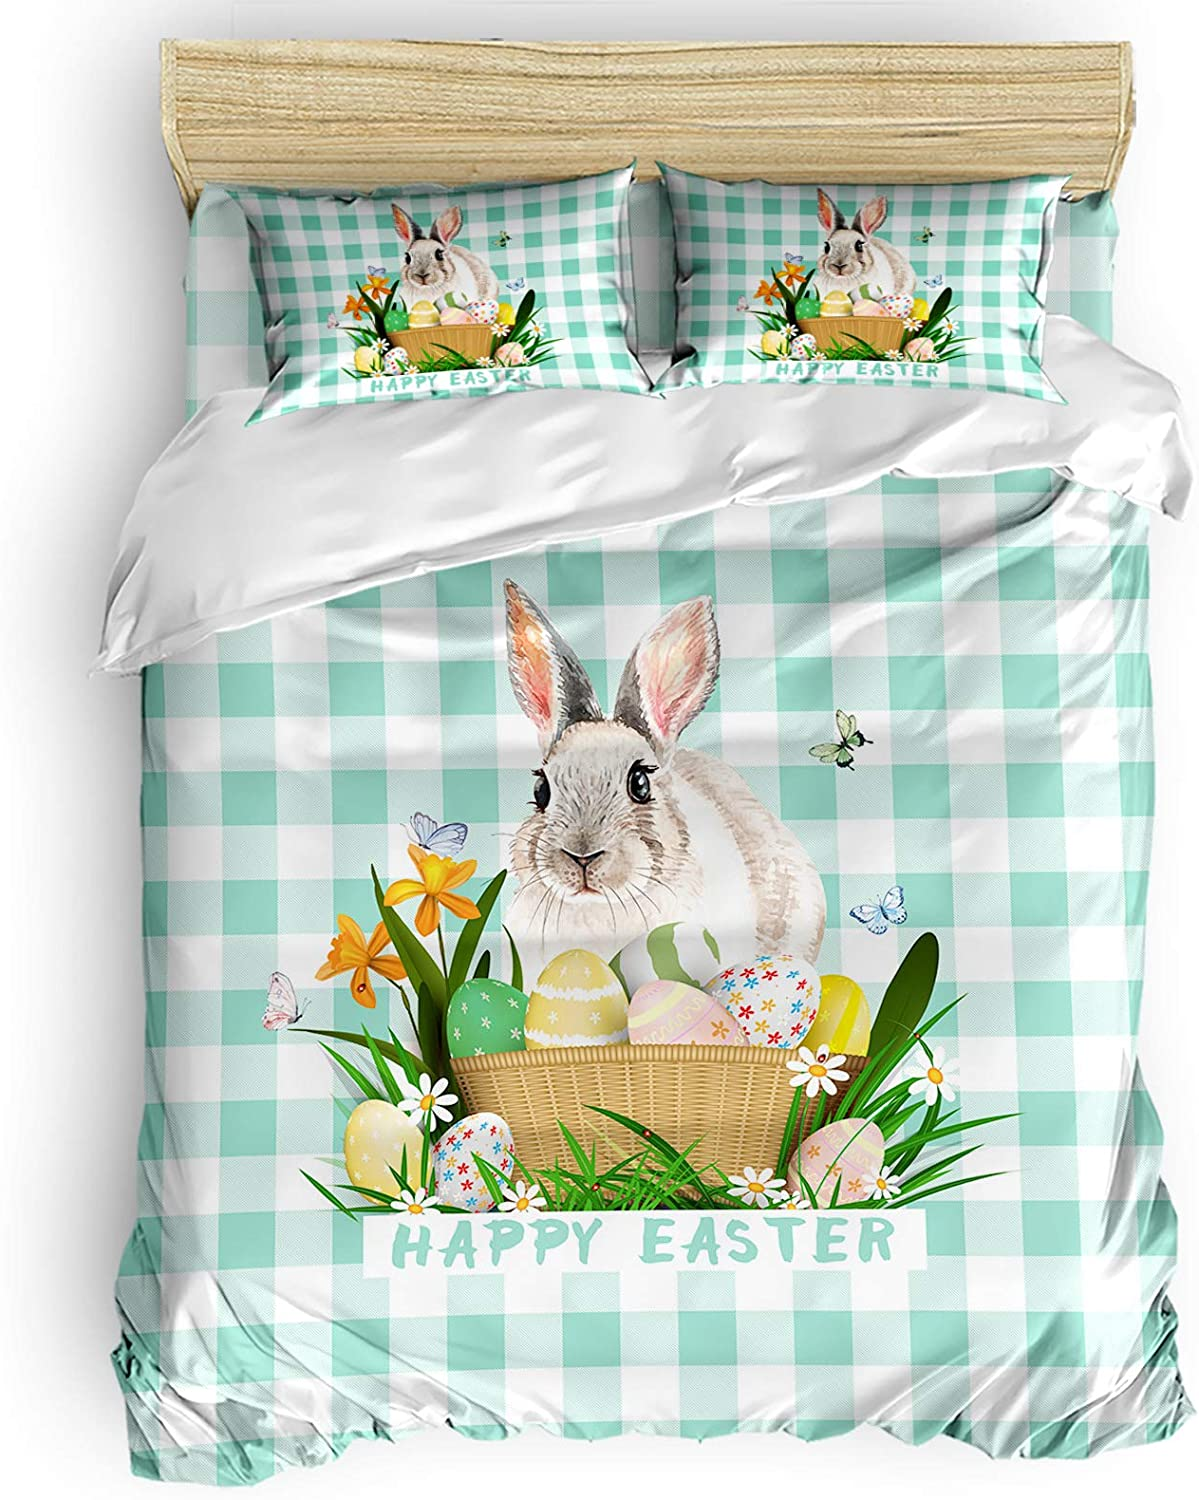 Comforter Sales of SALE items from new works Cover Set Bombing free shipping California Easter Duvet King Bunny